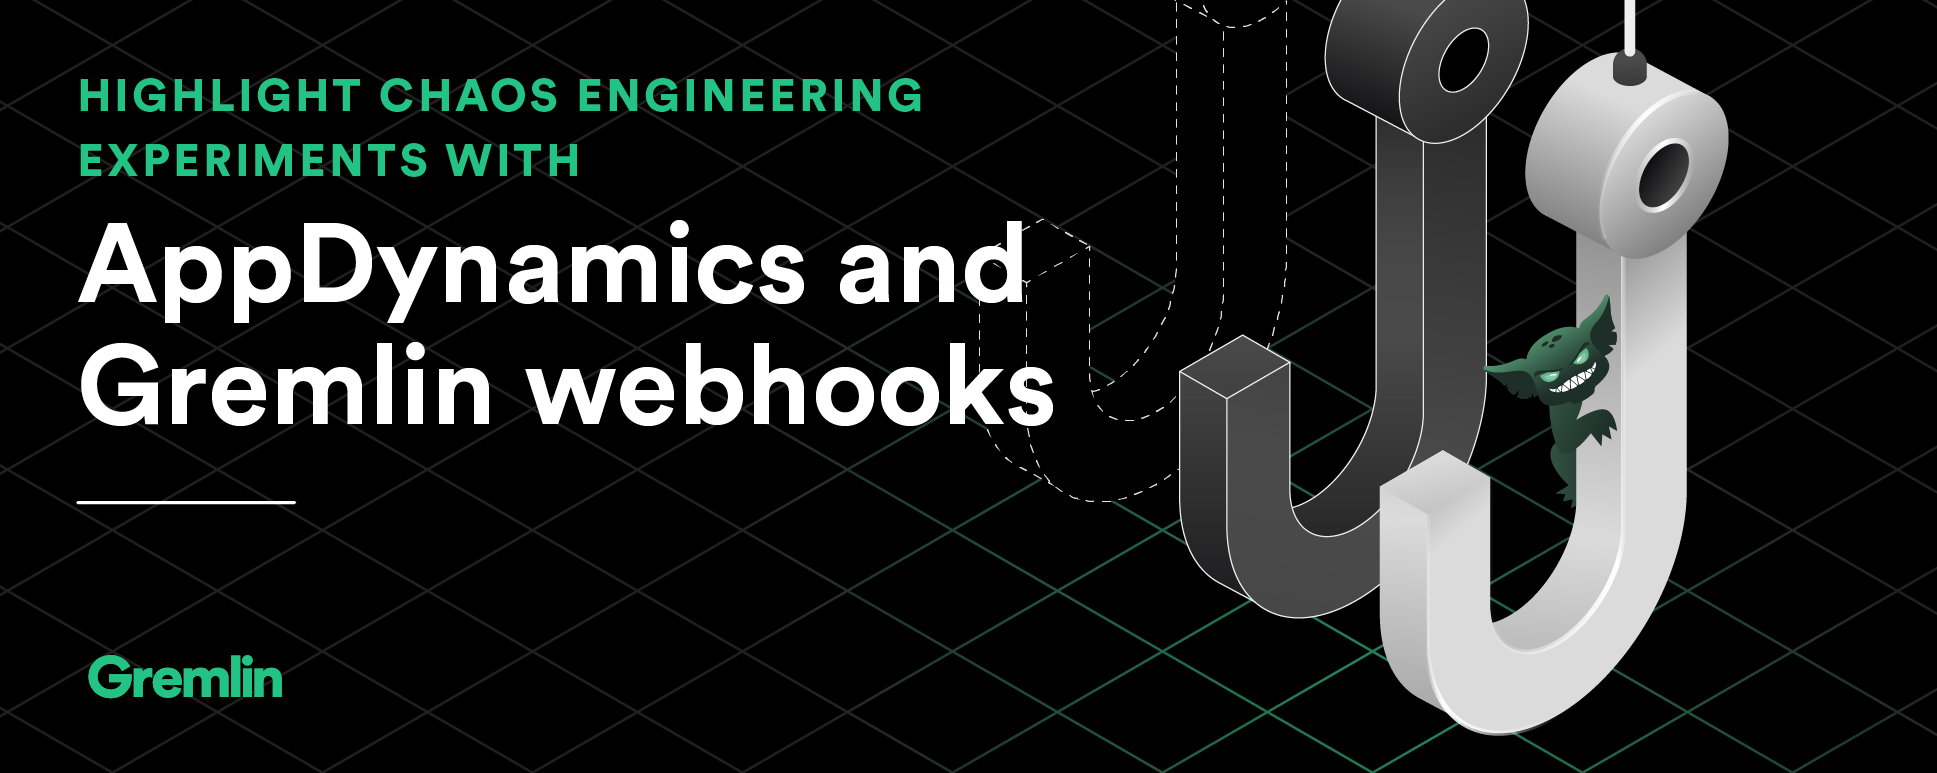 Highlight Chaos Engineering experiments with AppDynamics and Gremlin webhooks